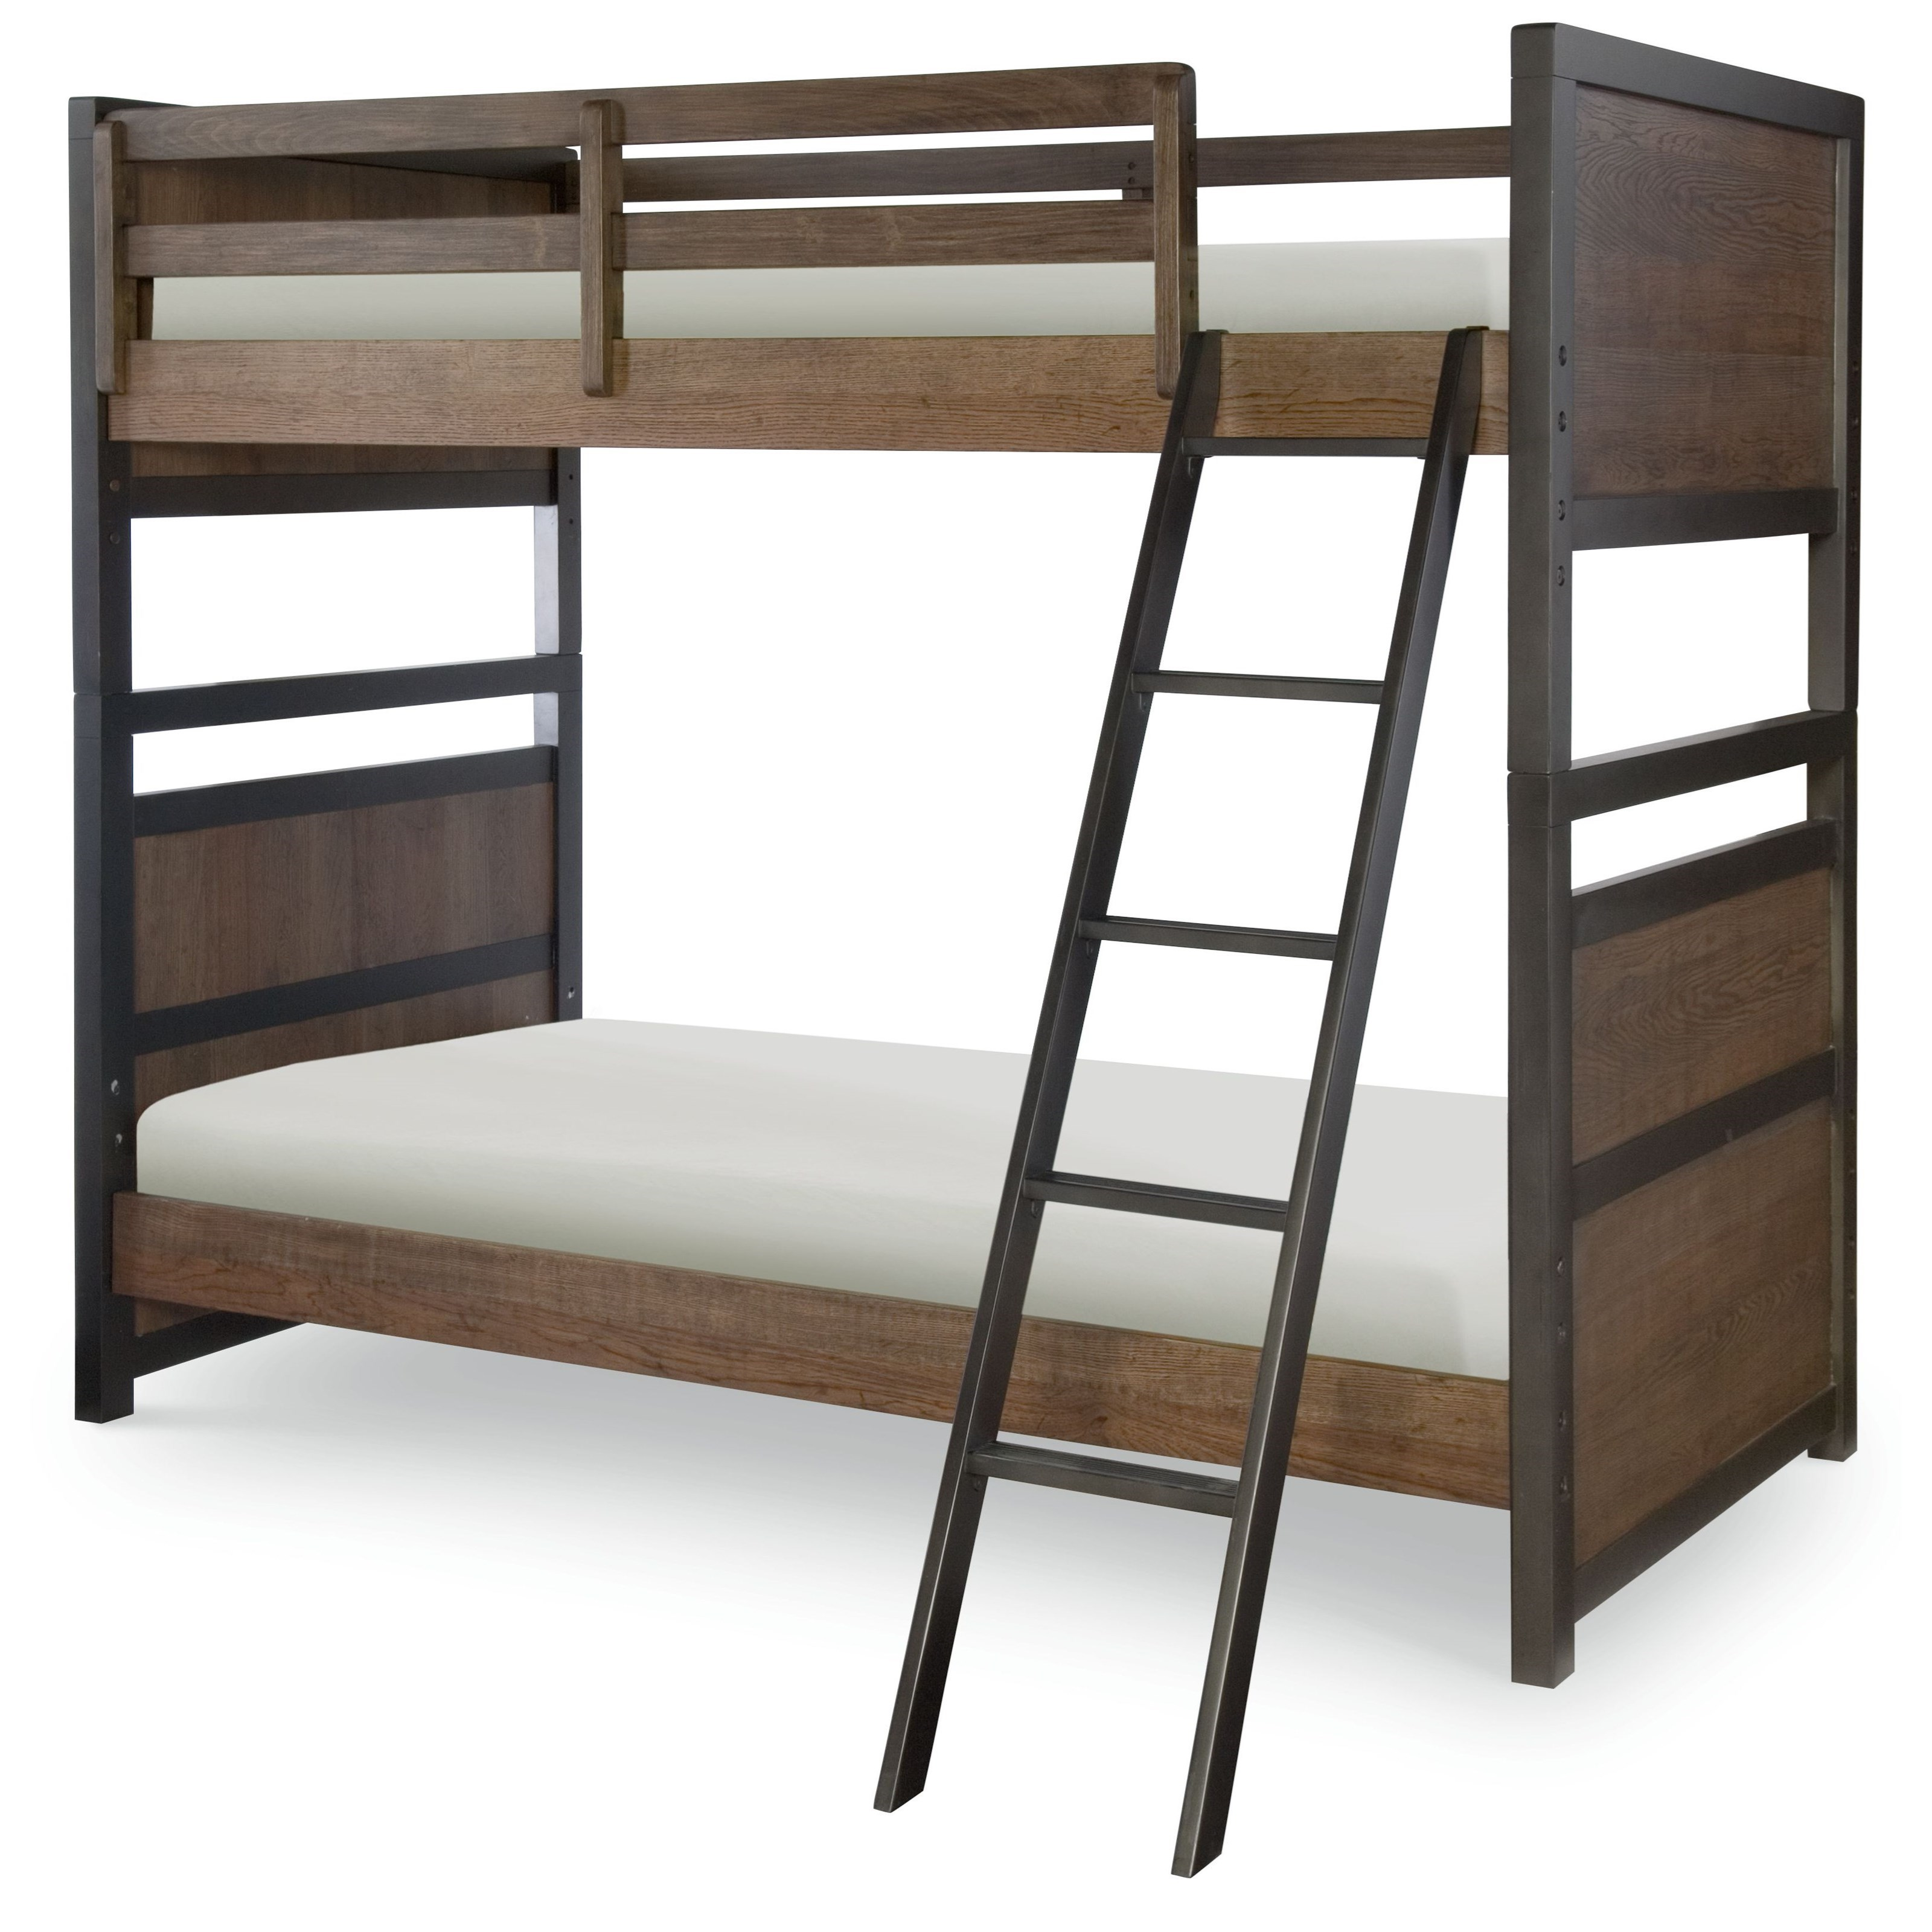 Legacy Classic Kids Fulton County Twin Over Twin Bunk Bed - Item Number: 5900-8110K